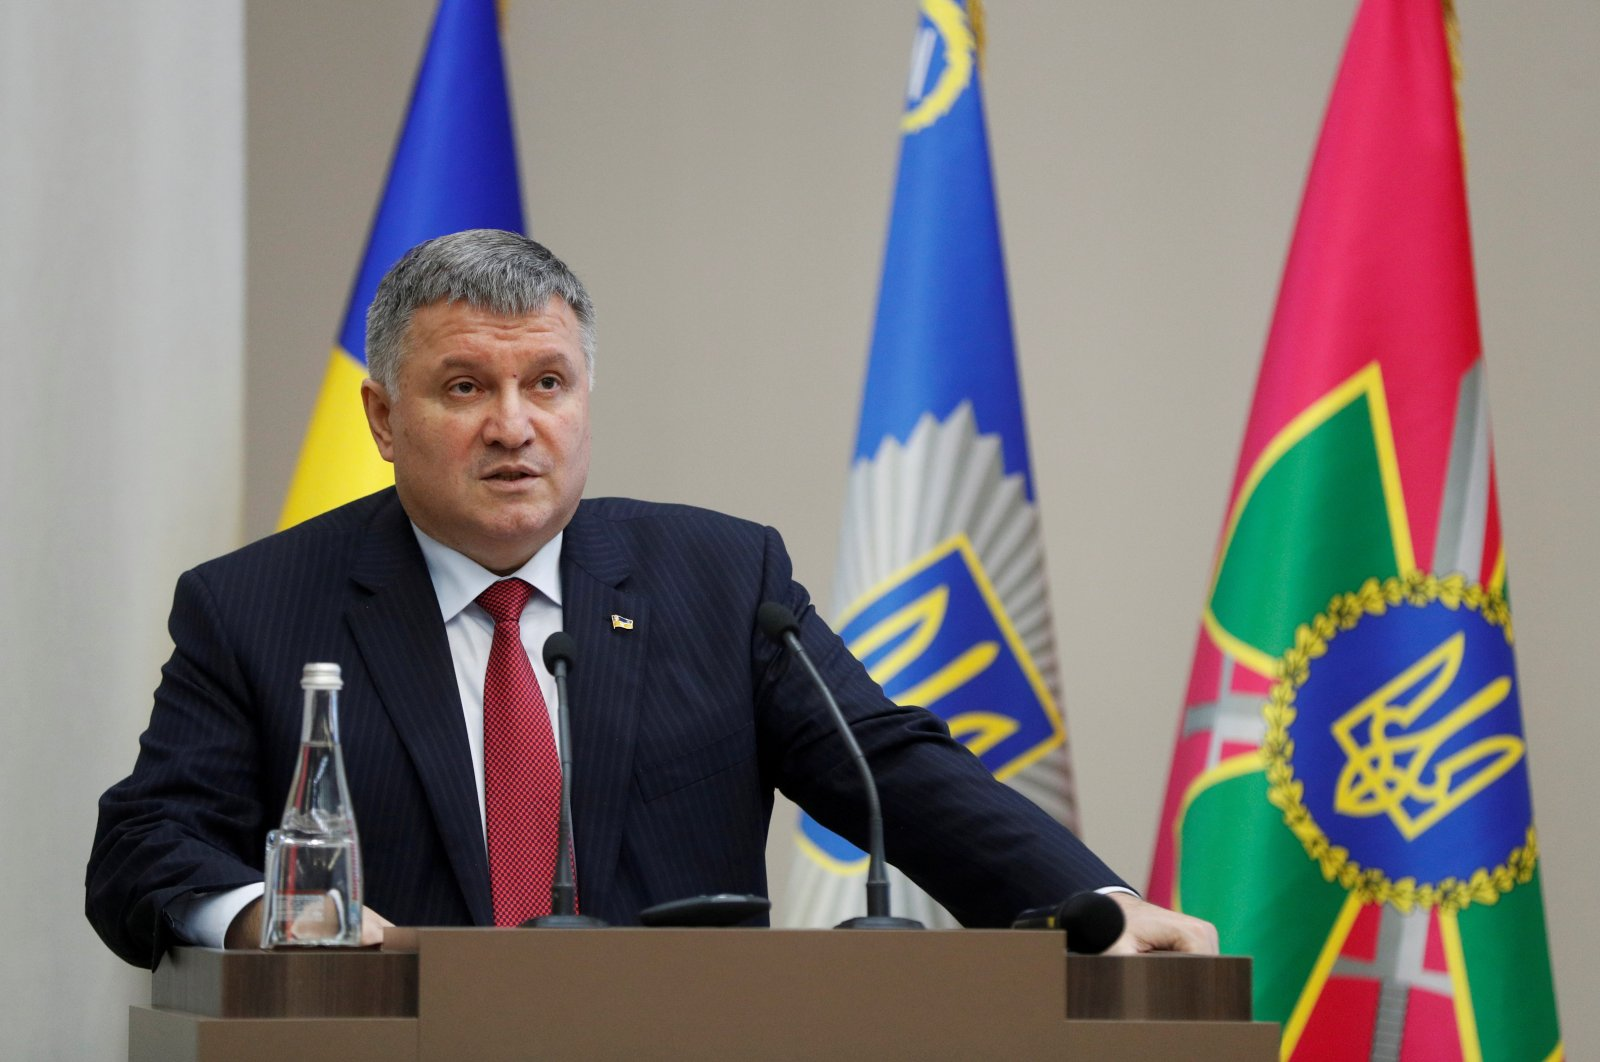 Ukrainian Interior Minister Arsen Avakov speaks during a news conference about the investigation of the killing of journalist Pavel Sheremet in 2016, Kyiv, Ukraine, Dec.12, 2019. (Reuters Photo)